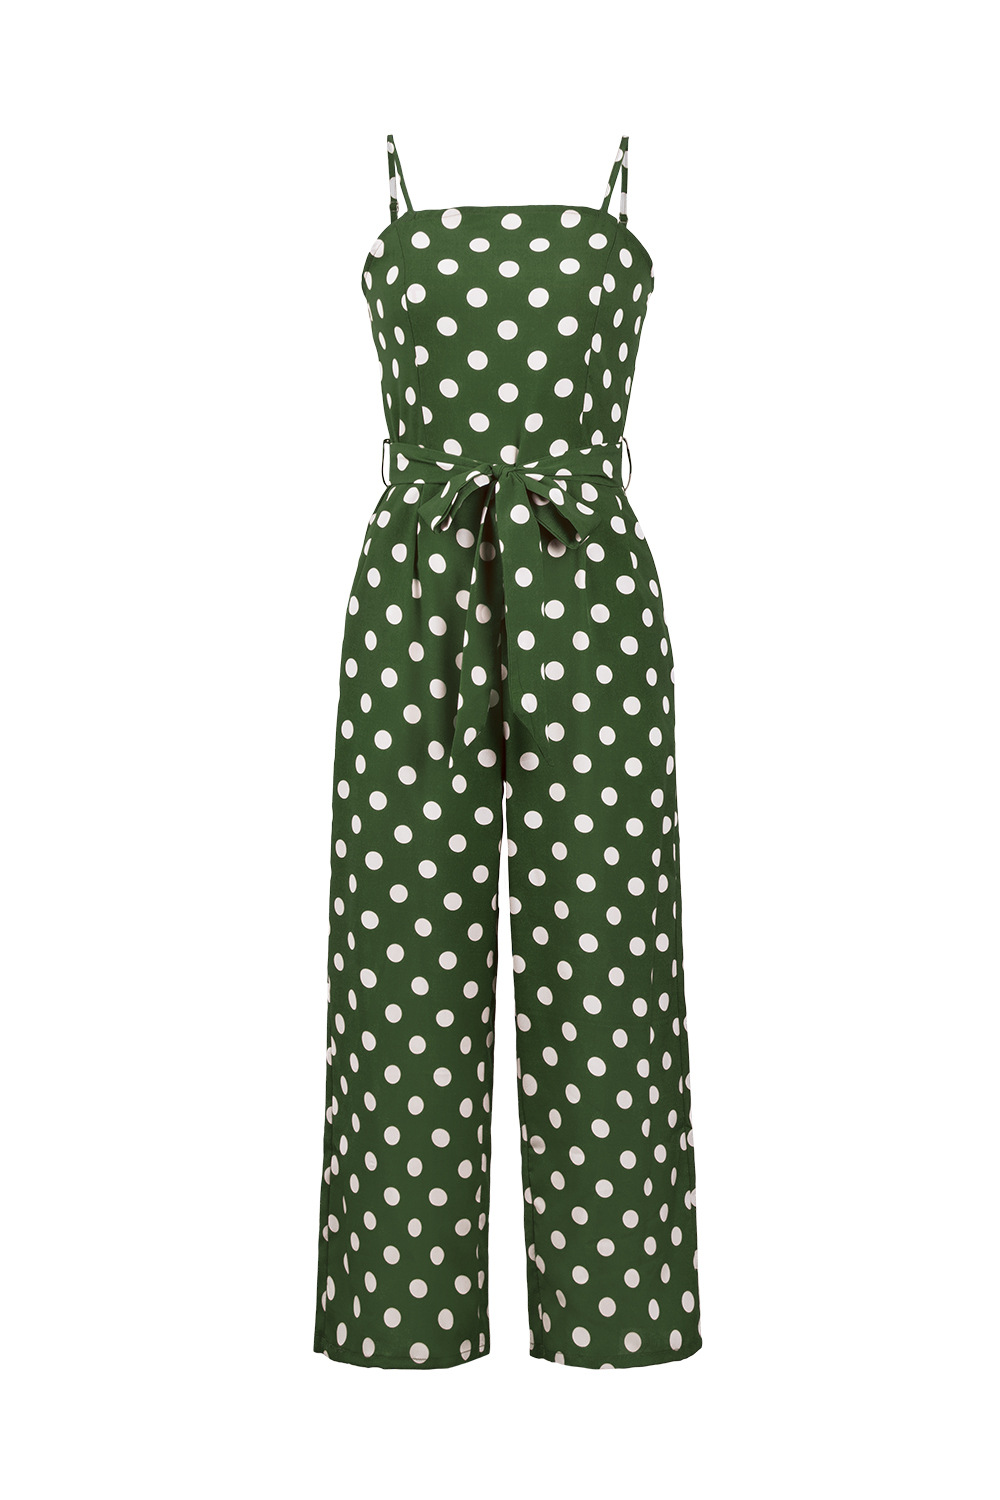 HTB10oAxbirxK1RkHFCcq6AQCVXal - Women Rompers summer long pants elegant strap woman jumpsuits polka dot plus size jumpsuit off shoulder overalls for womens